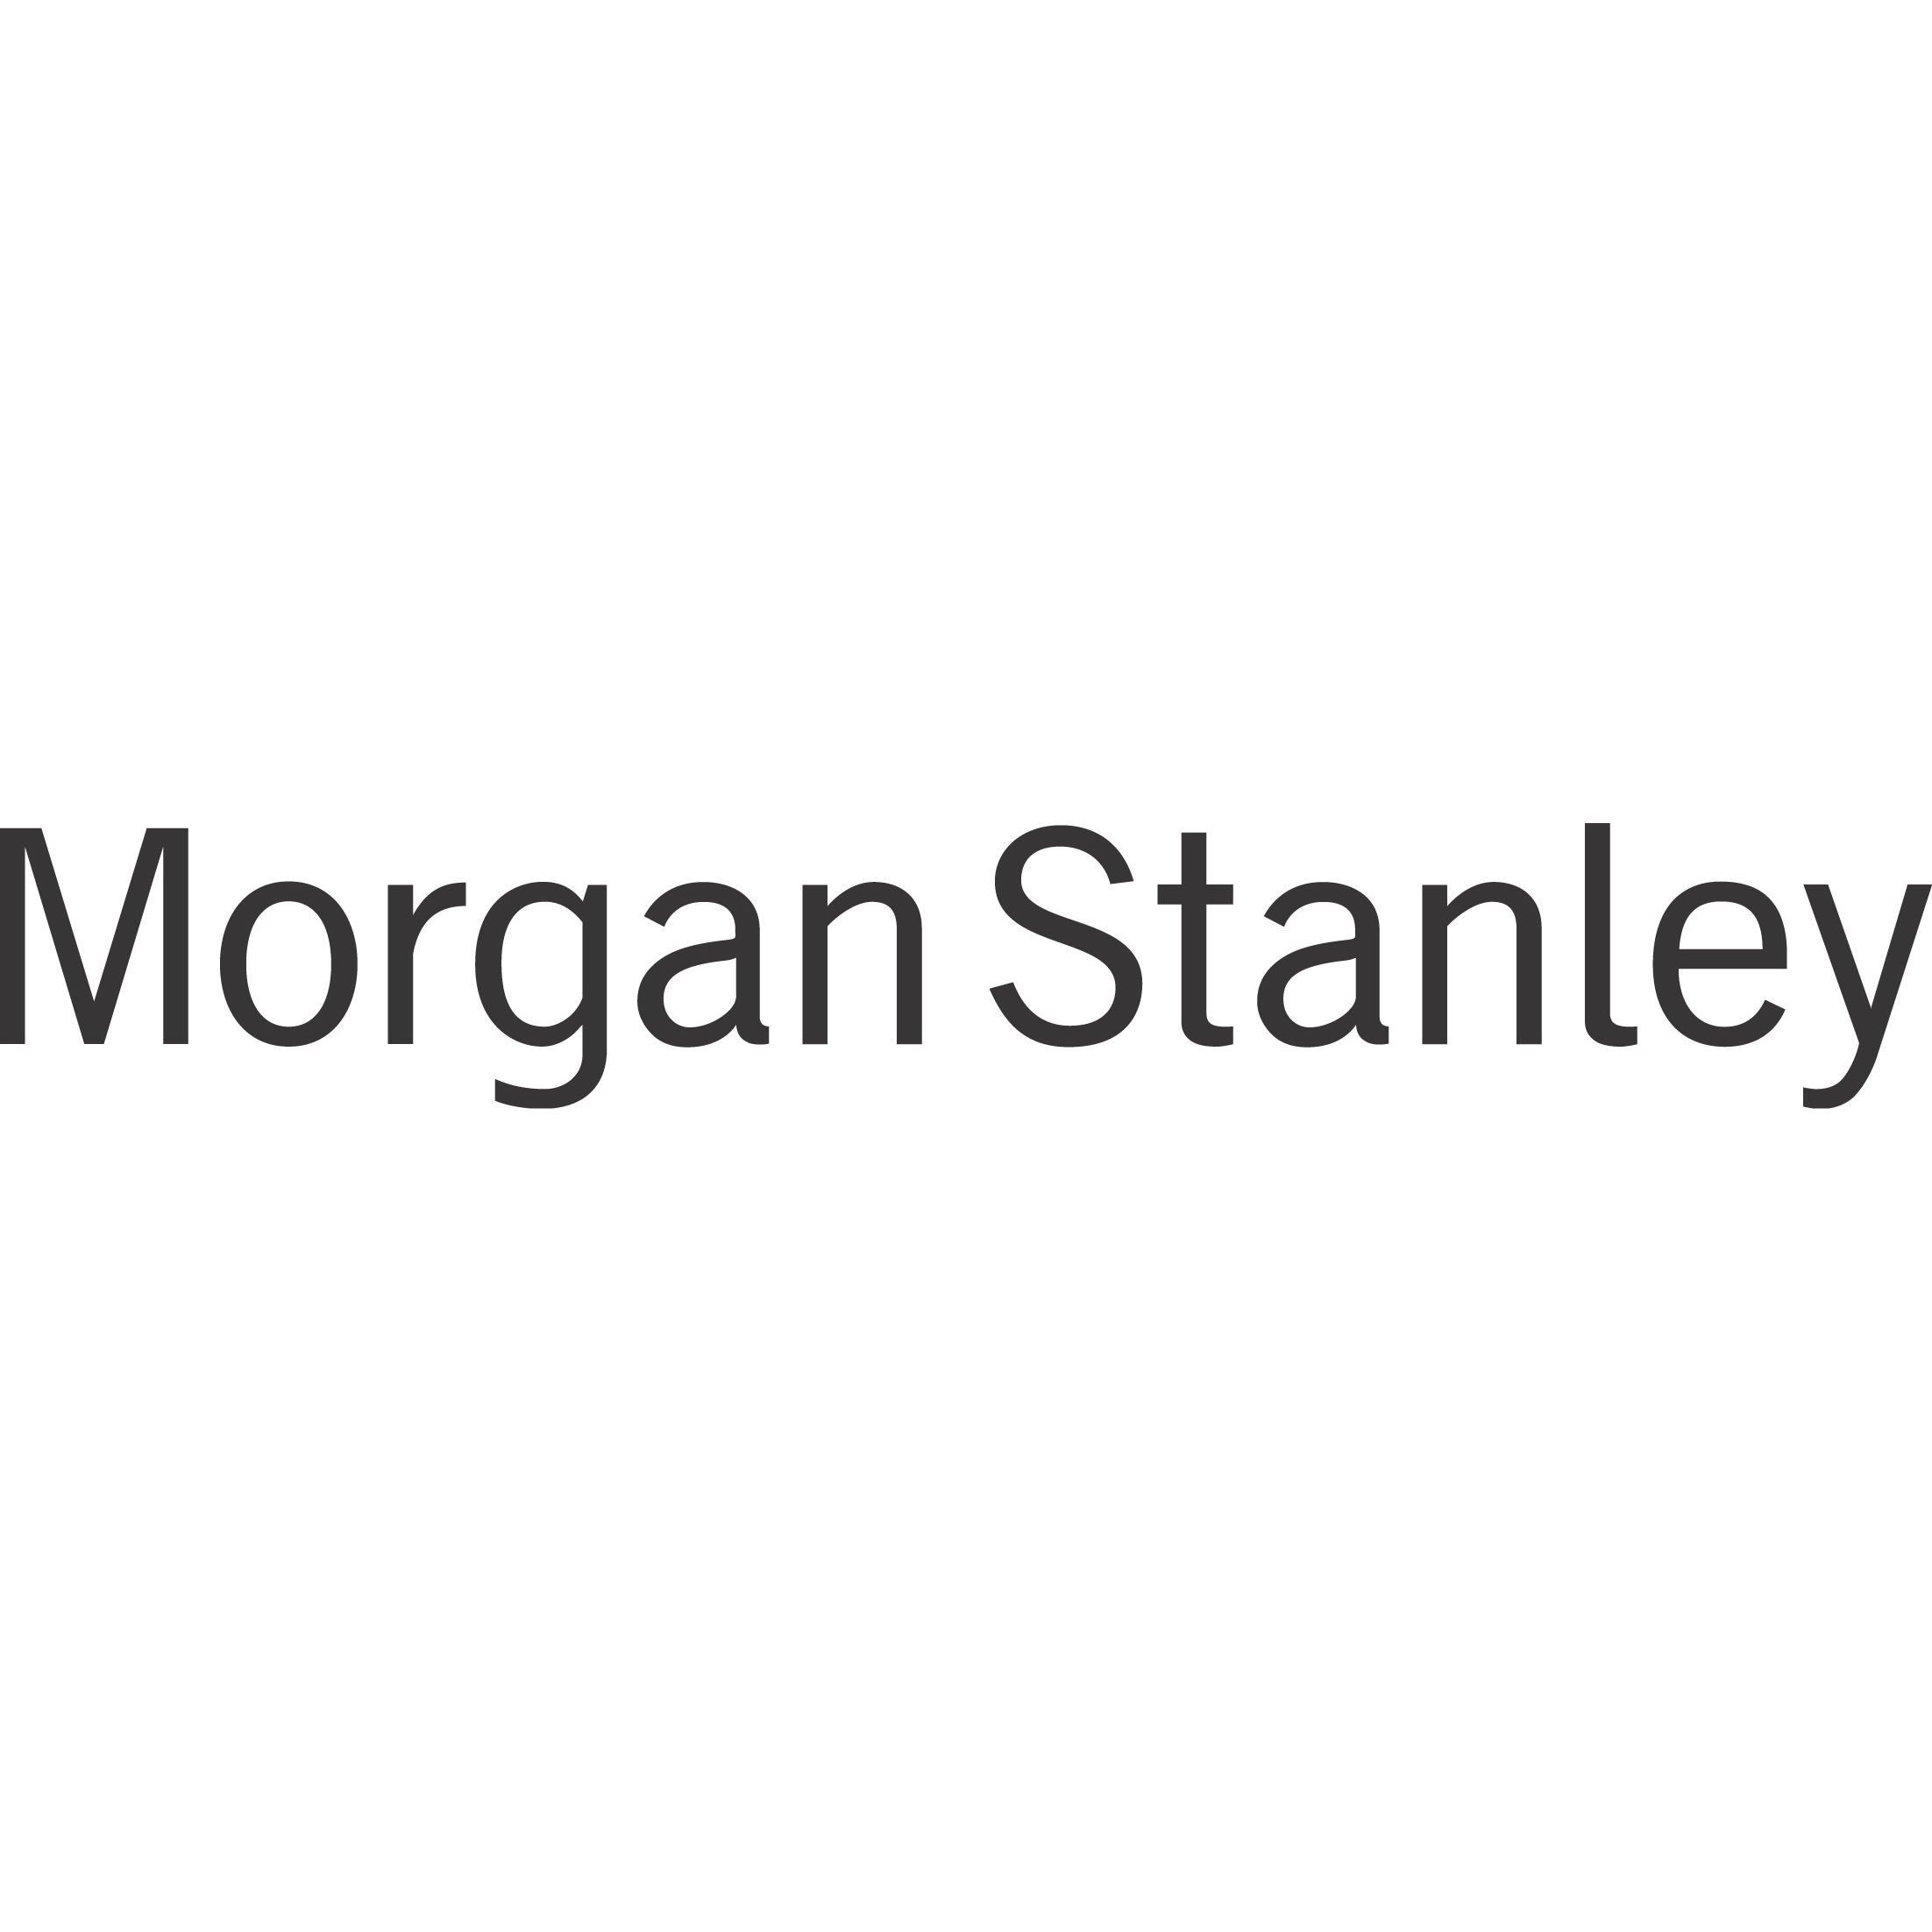 J.P. Brar - Morgan Stanley | Financial Advisor in Irvine,California